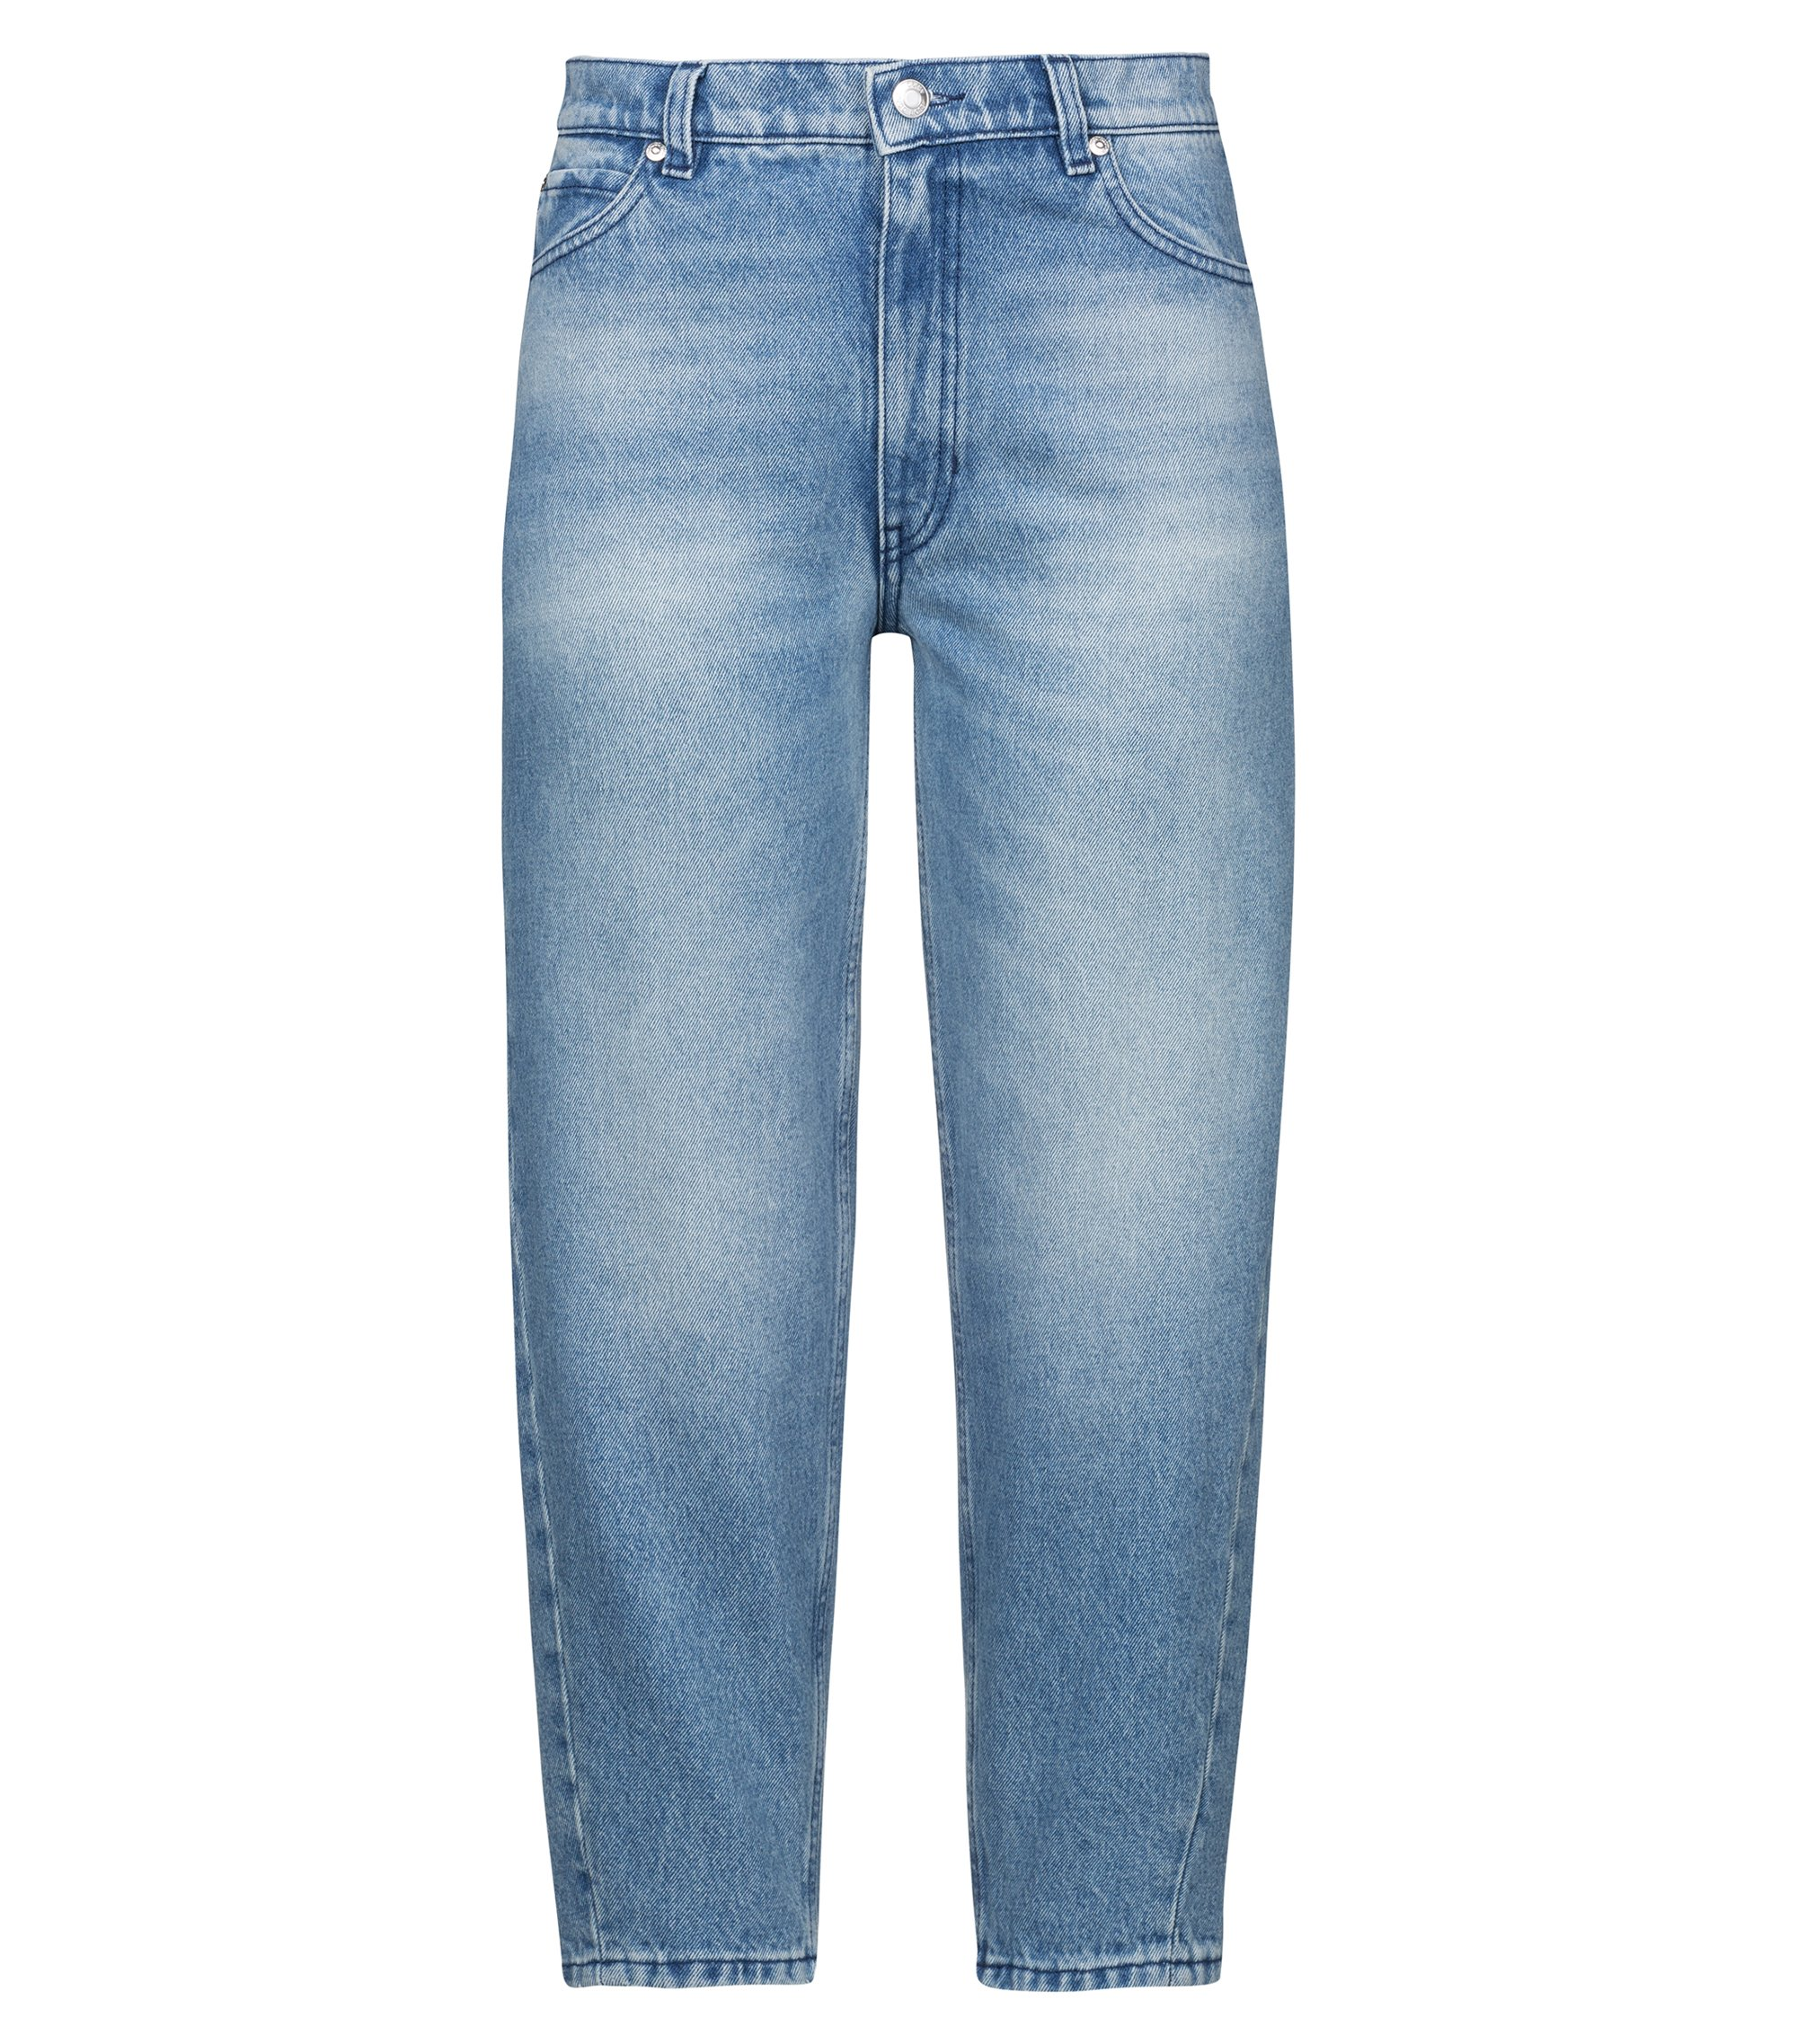 Carrot-fit jeans in distressed pure-cotton denim, Blue